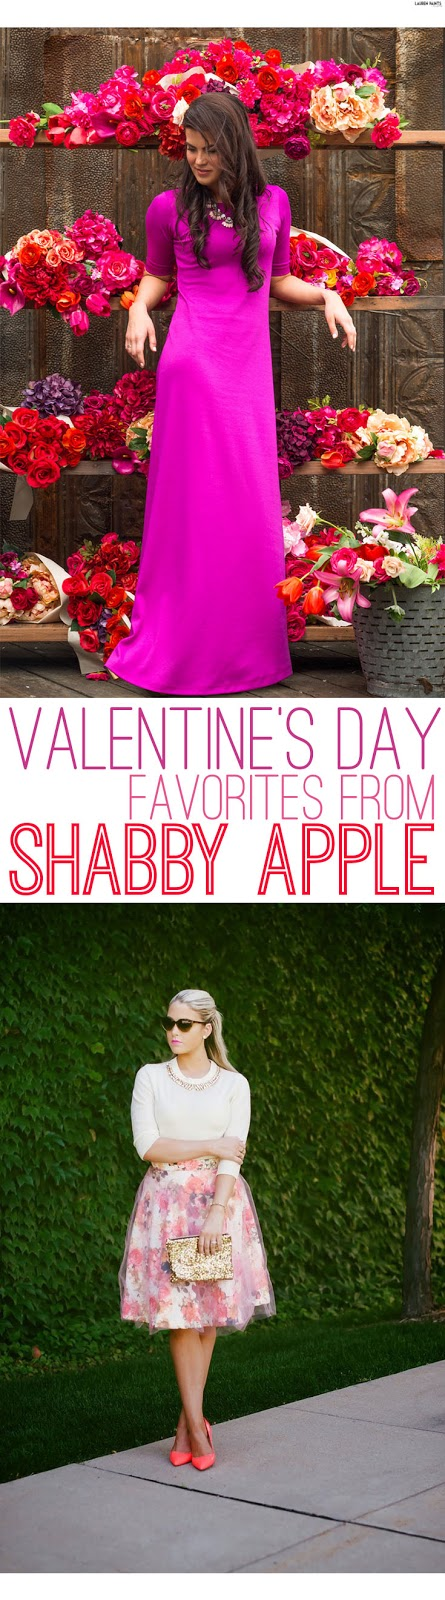 Find the perfect, flirty, feminine outfit for Valentine's Day from Shabby Apple!